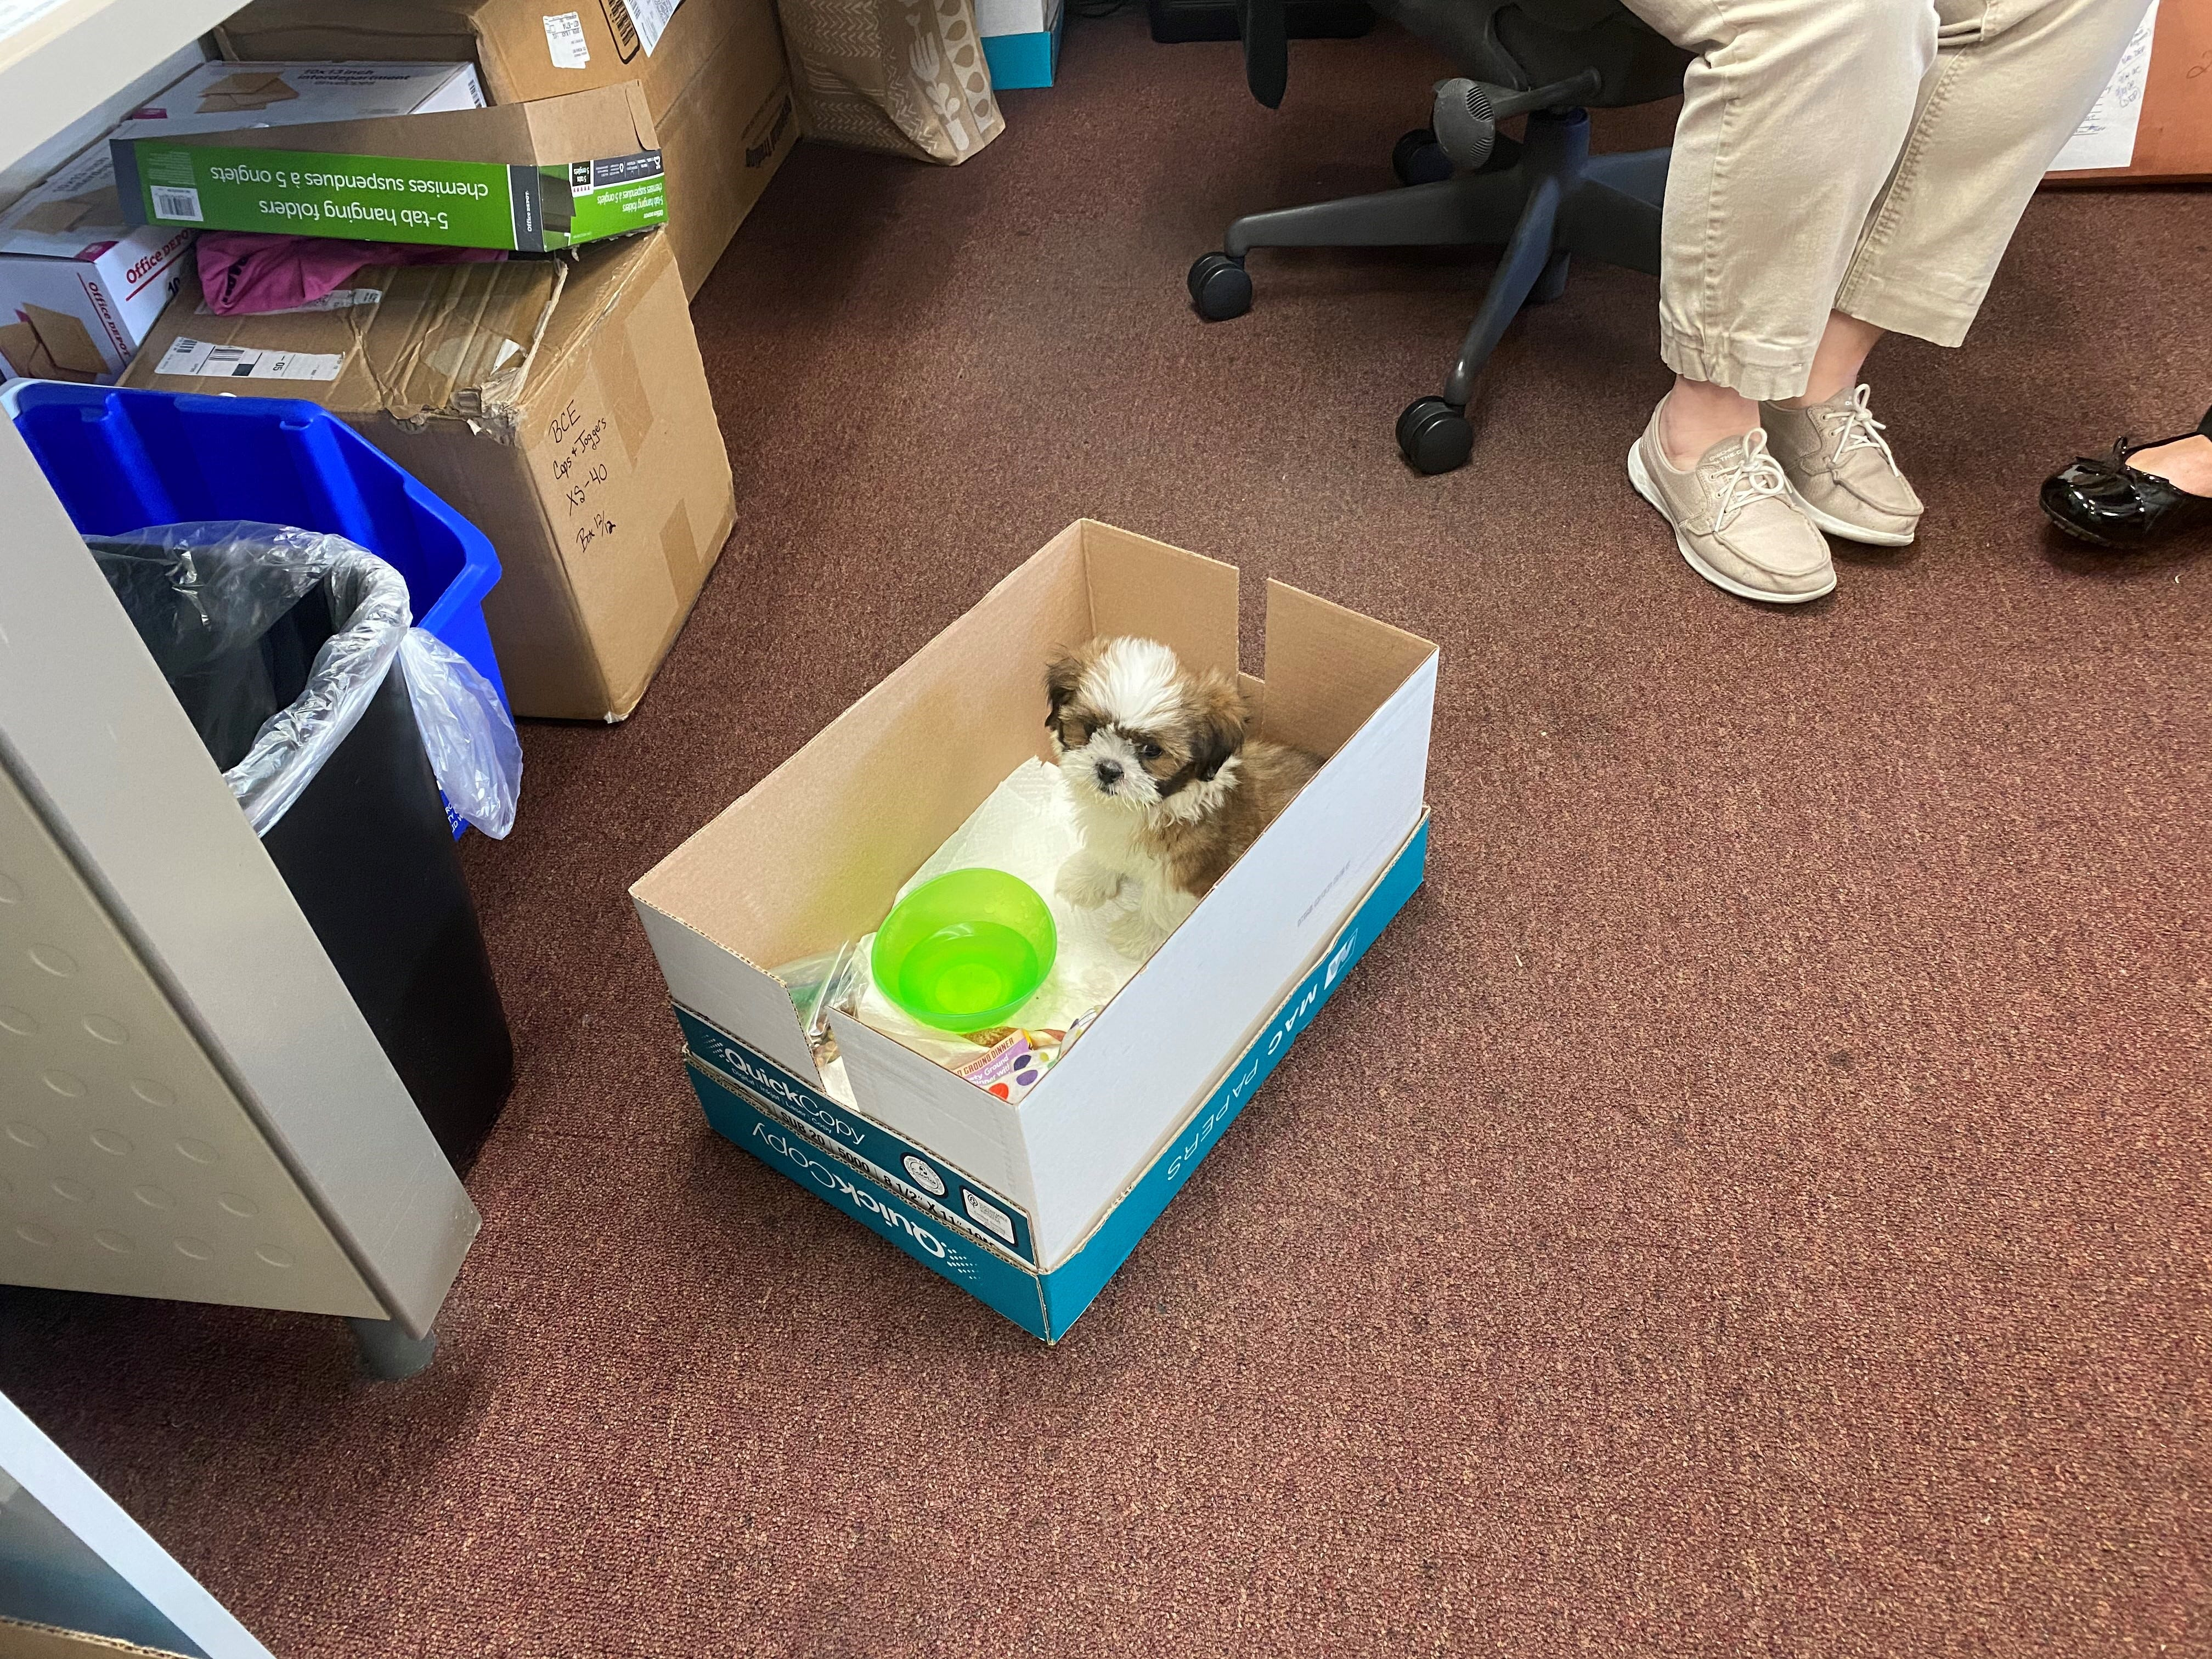 The pooch is back! $3,700 Shih Tzu puppy stolen from Fort Myers pet store recovered 3